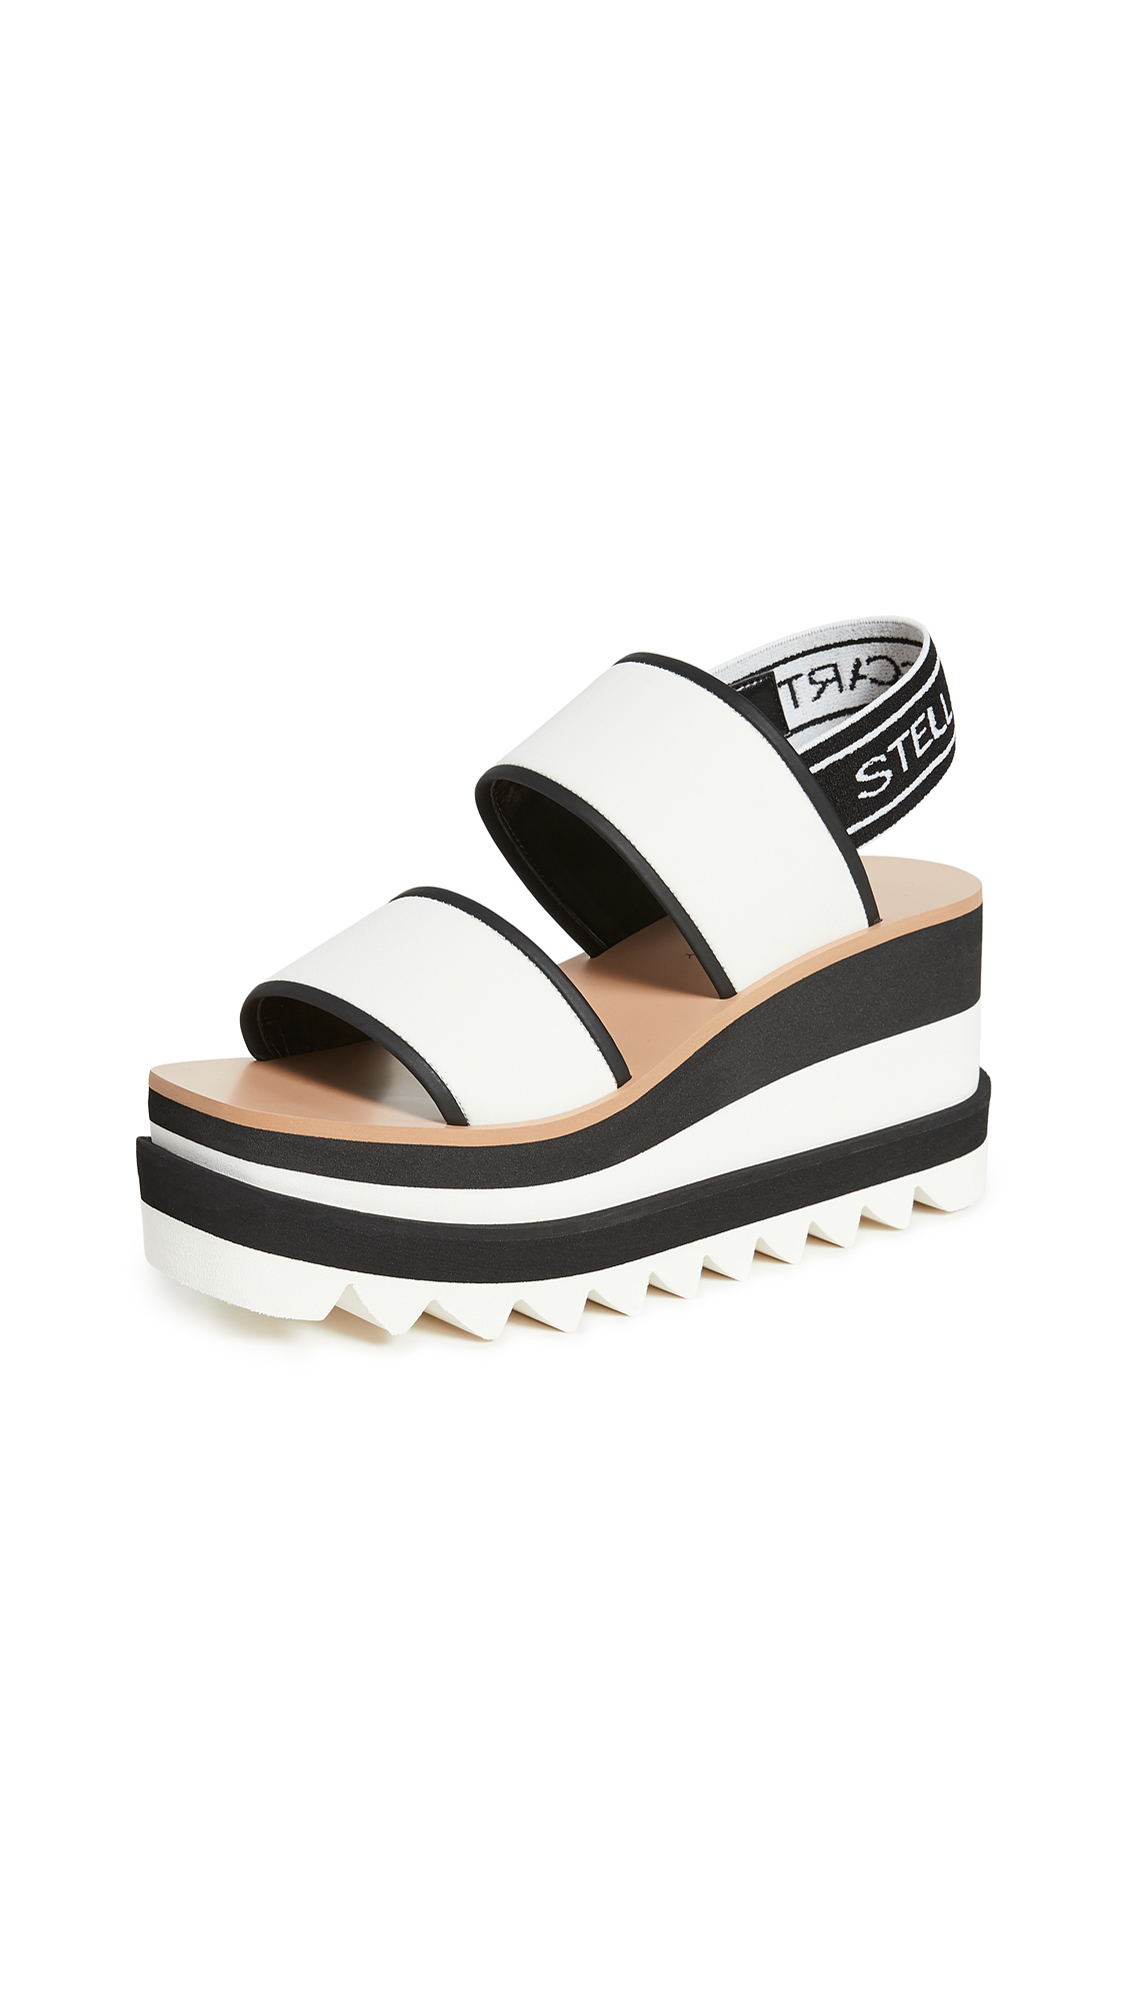 Buy Stella McCartney Two Band Sandals online, shop Stella McCartney